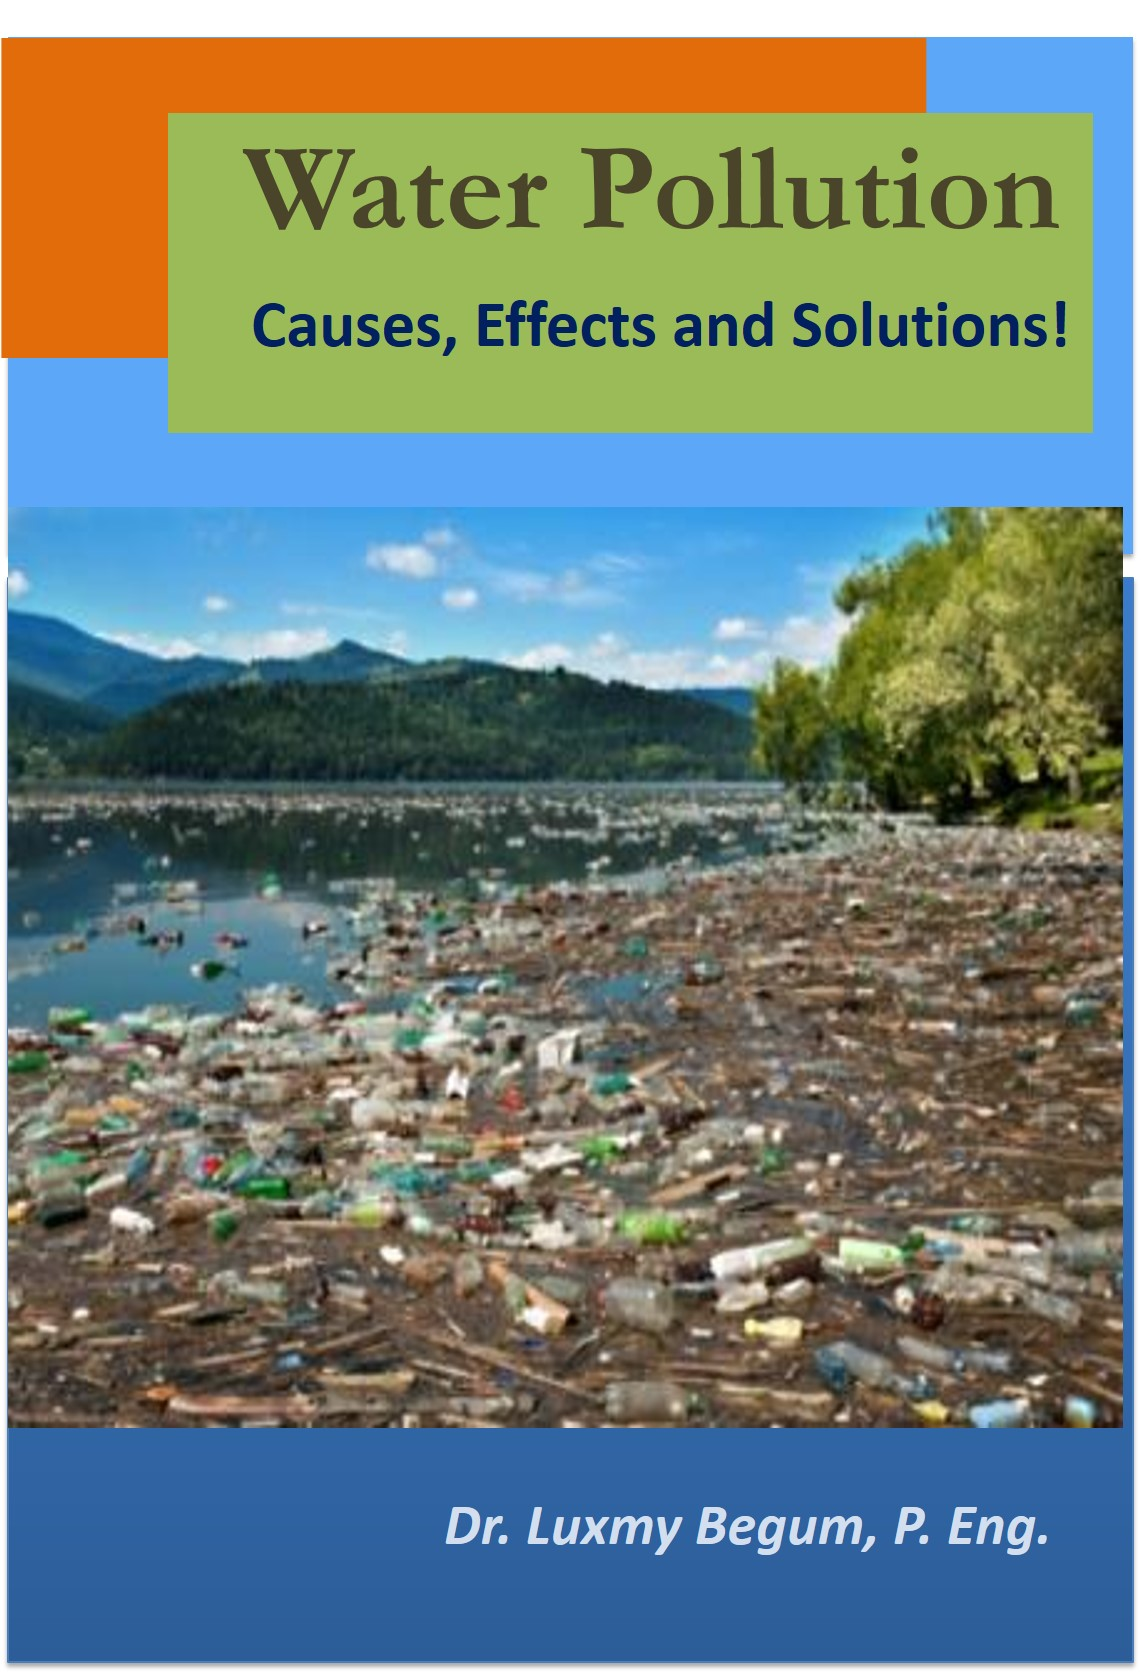 a essay about pollution on water Writing an essay about water pollution is a cinch, especially if you've been reading a lot about the subject water pollution is a usual topic in high school.